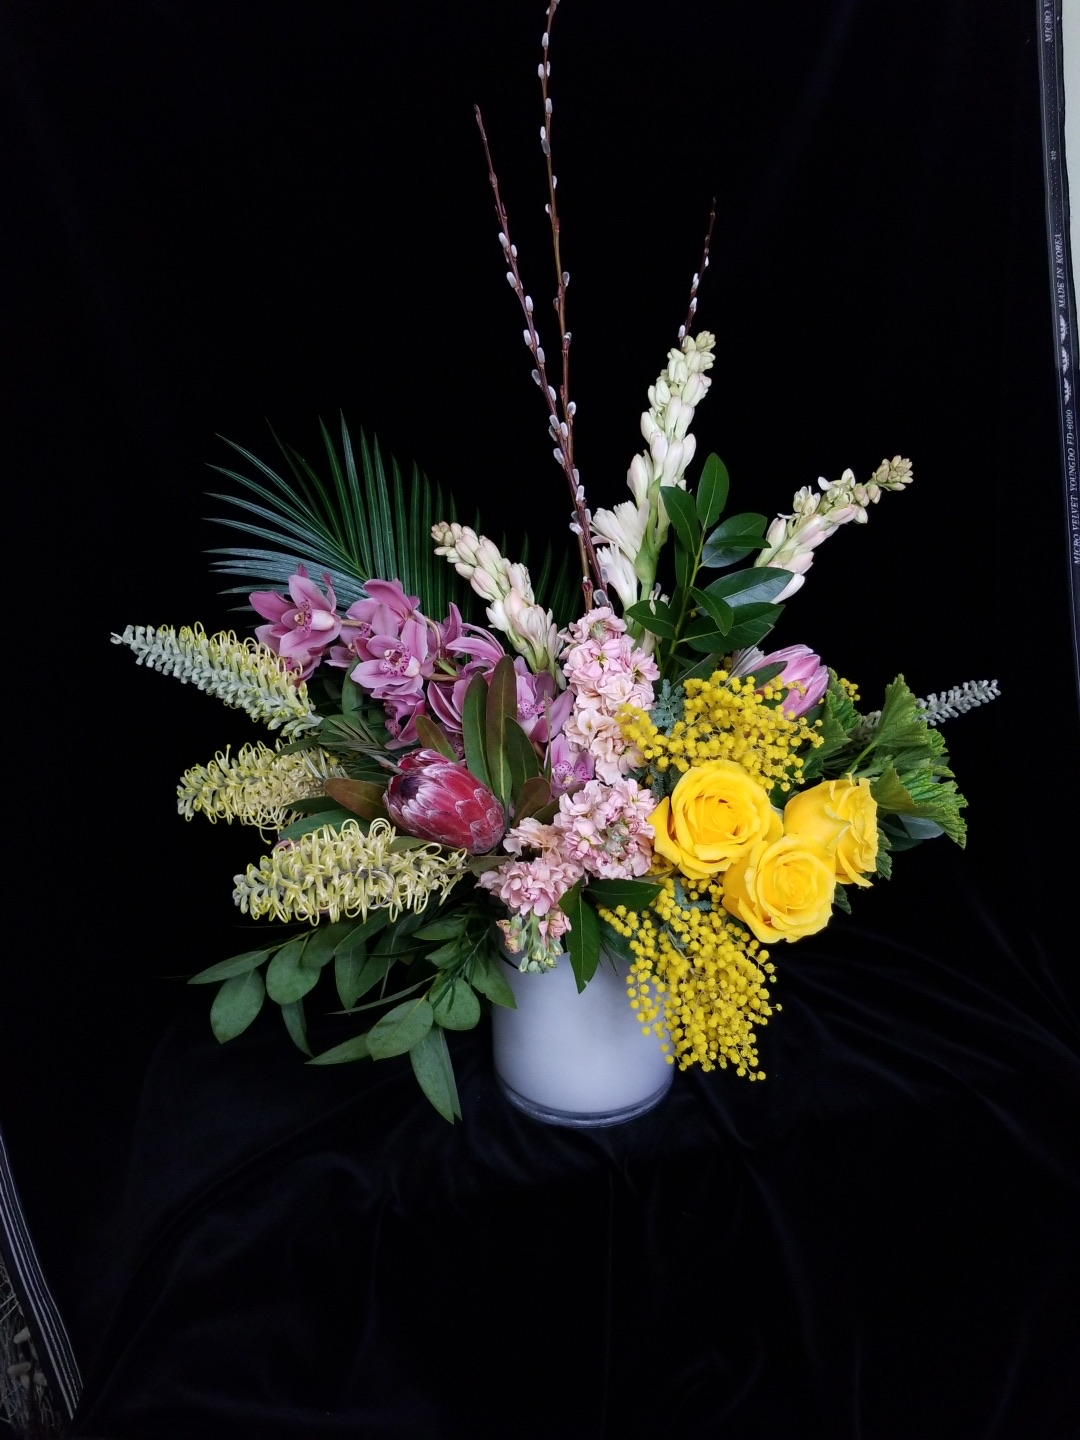 34. Modern eclectic soft pastel tropicals